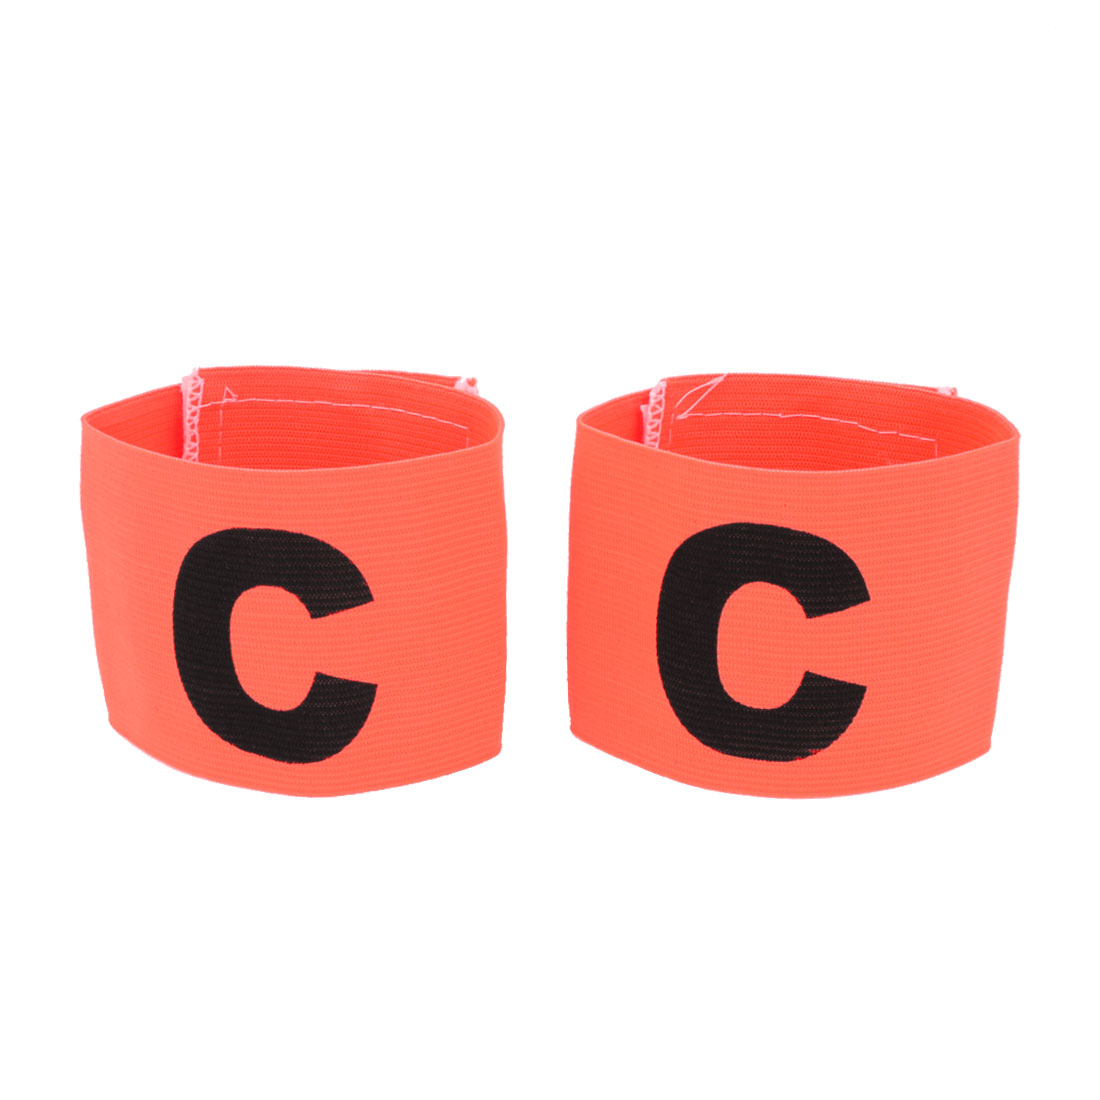 Team Football Stretchy Hook Loop Closure Captain Armband Orange 2 Pcs